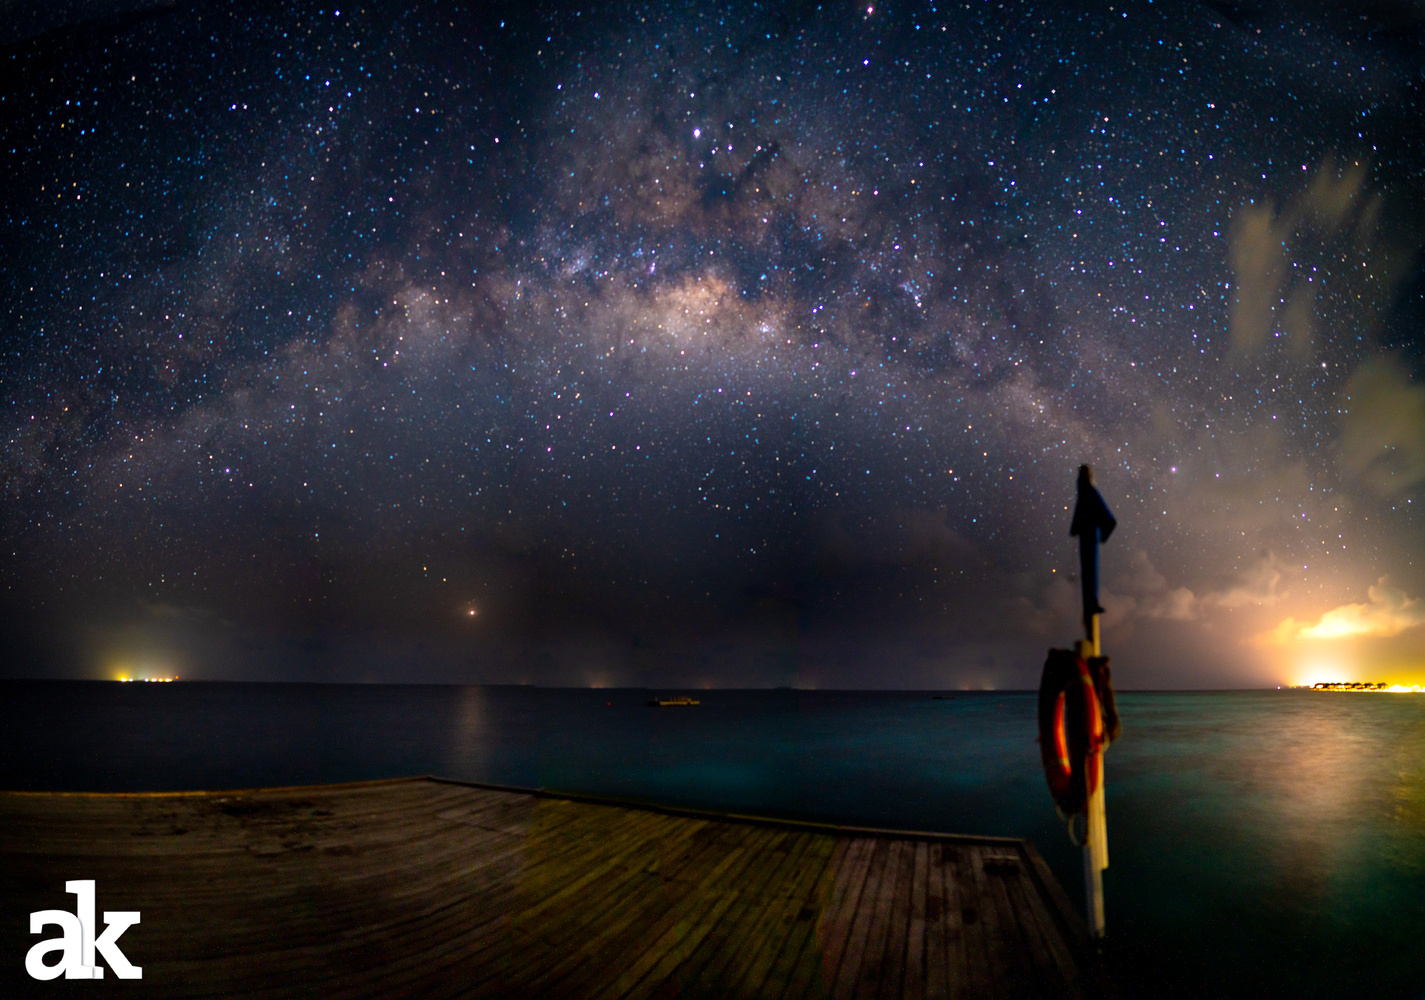 Milky Way over the Maldives by Aditya Kapoor